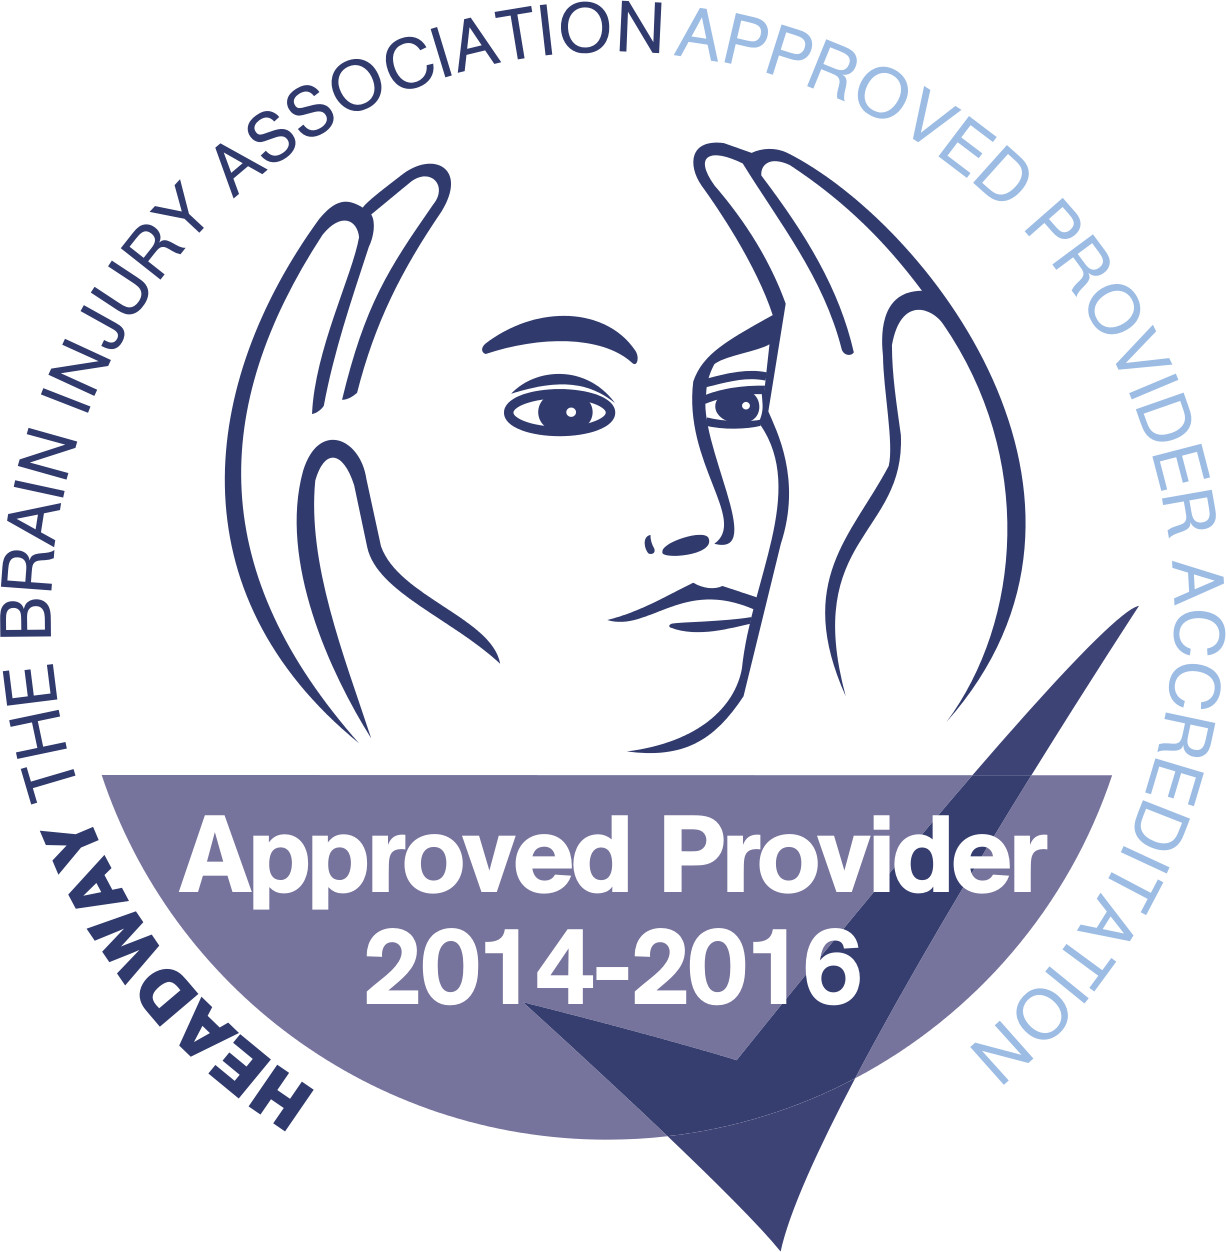 Headway Accreditation